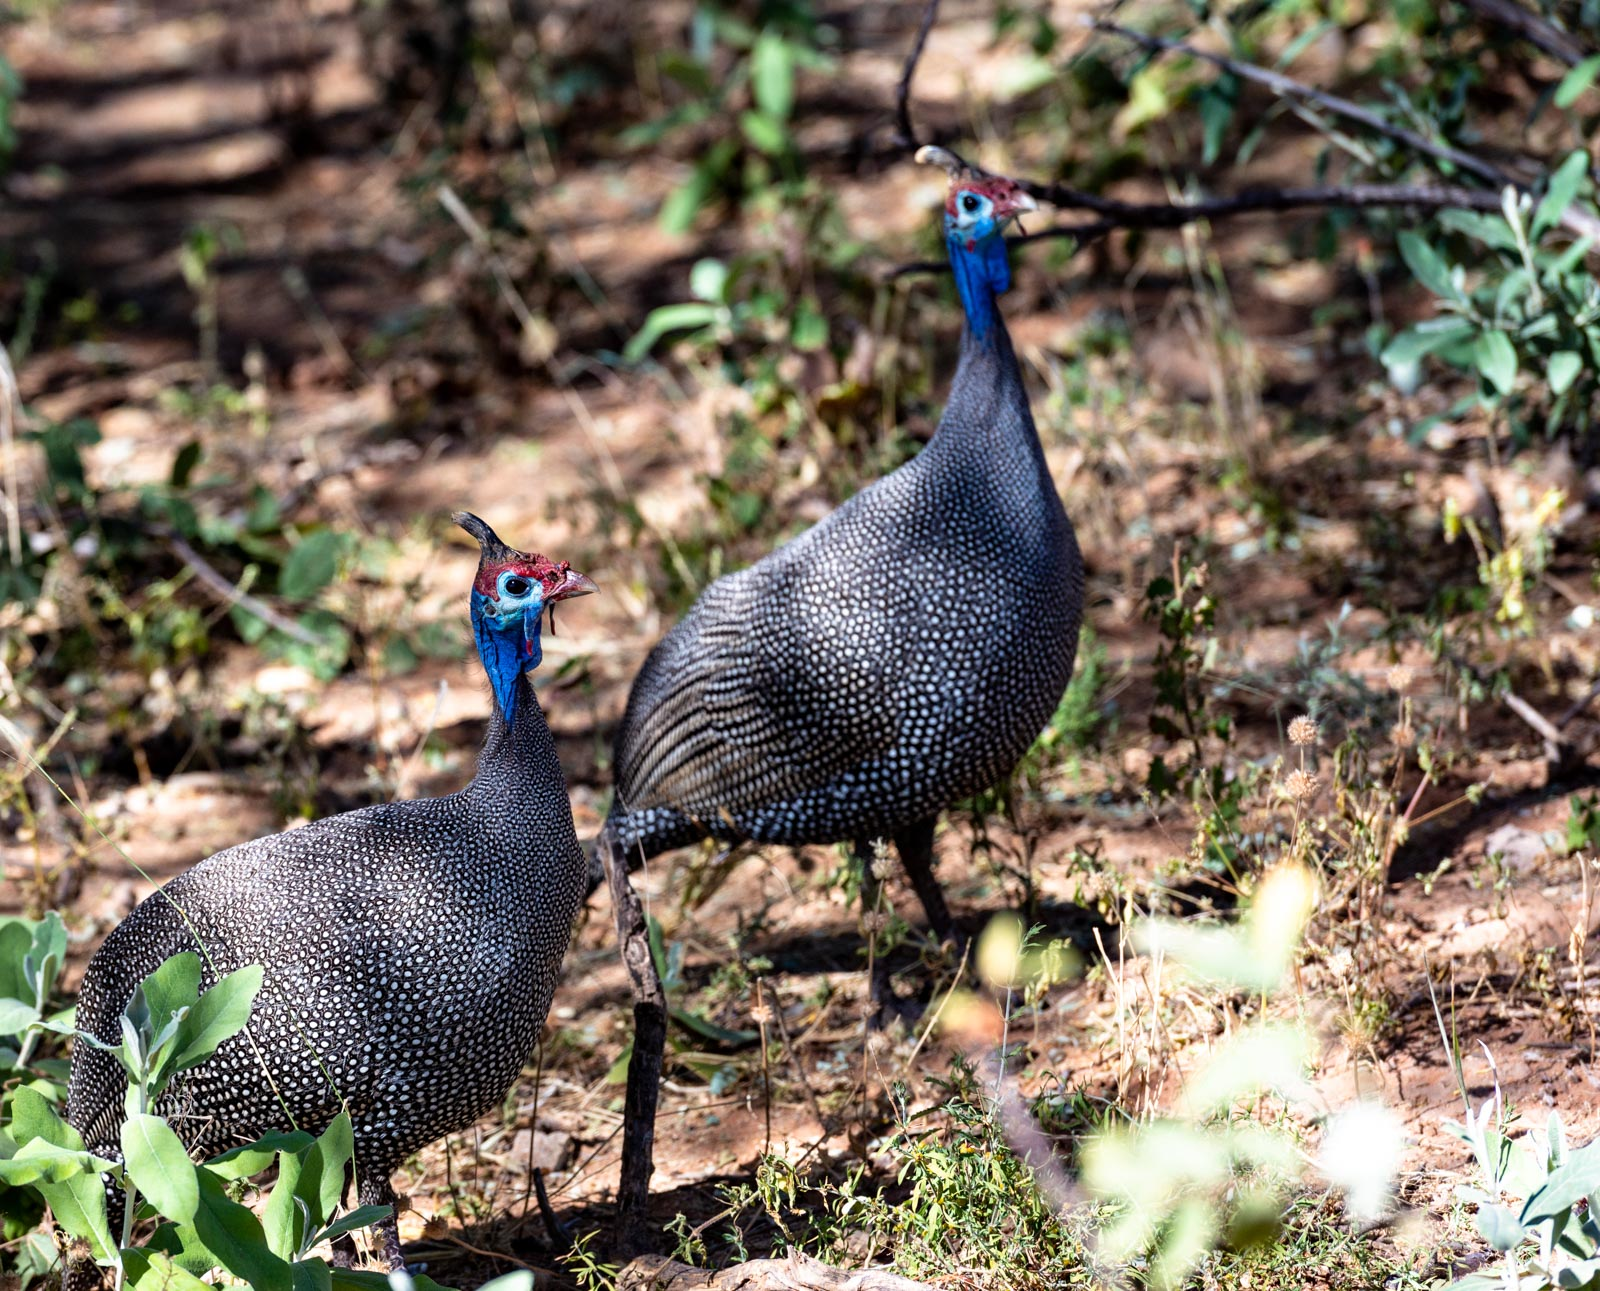 Namibia_okonjima pair of helmeted guinea fowl-0121254.jpg